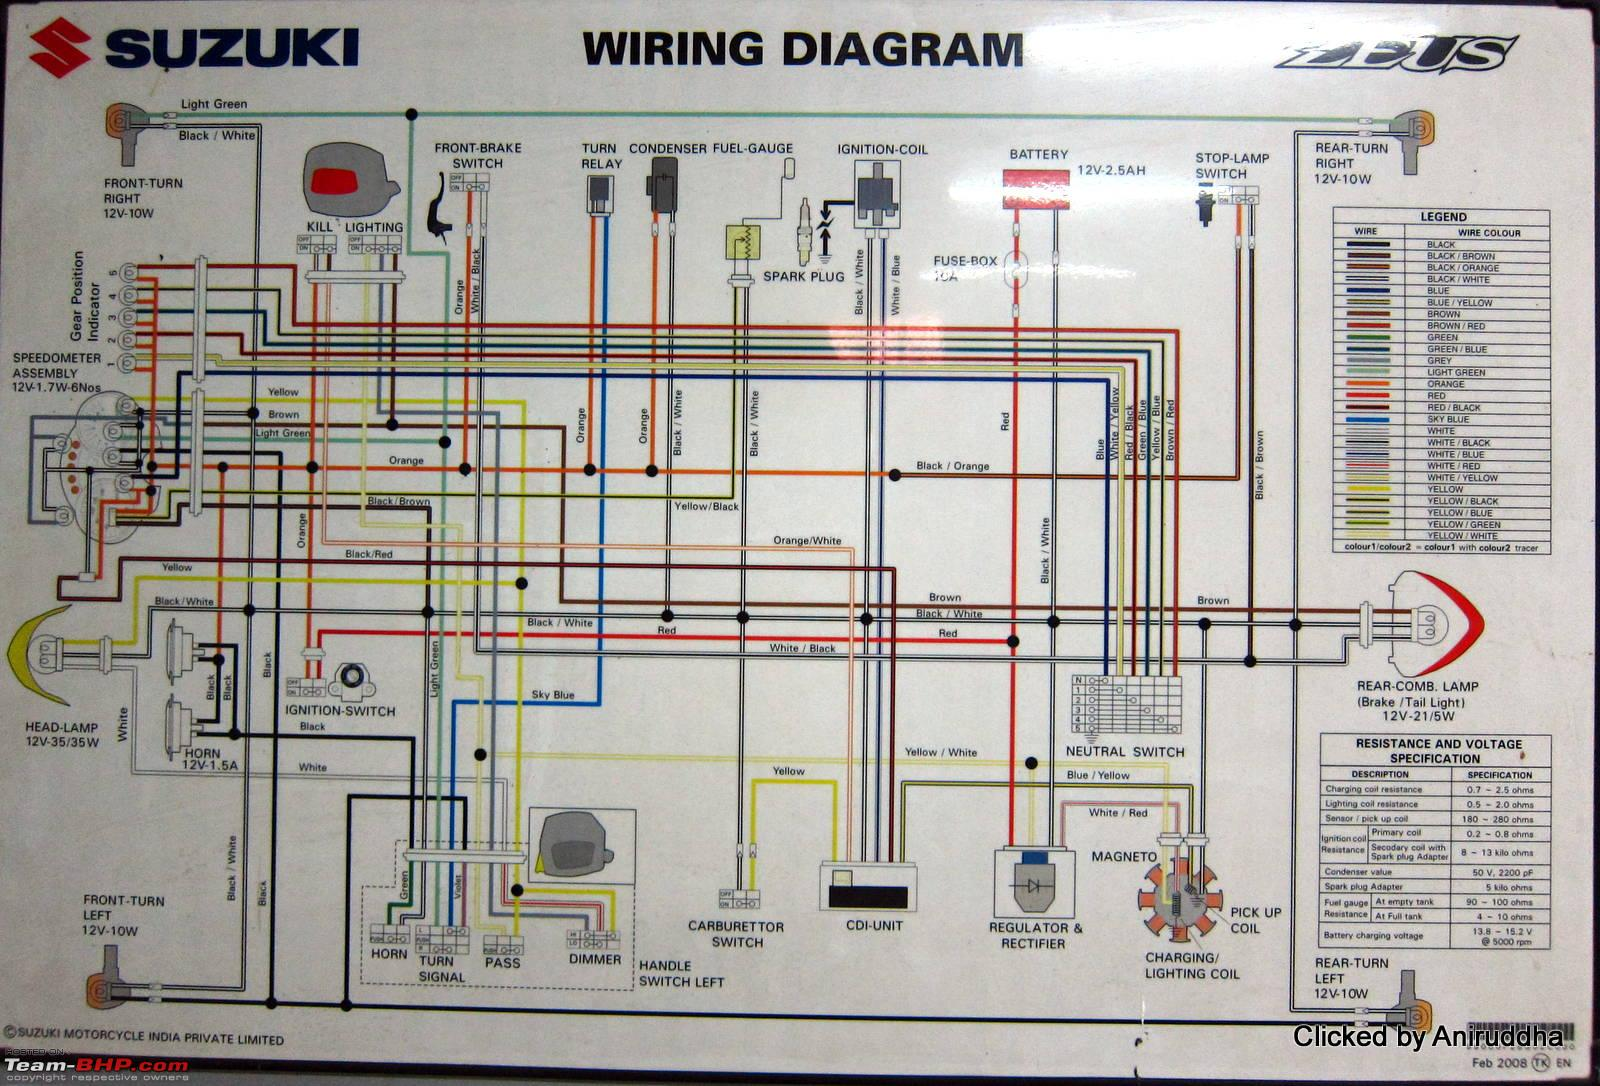 wiring diagrams of indian two wheelers team bhp rh team bhp com Suzuki Wiring Diagrams LT230GE Suzuki 230 QuadSport Wiring